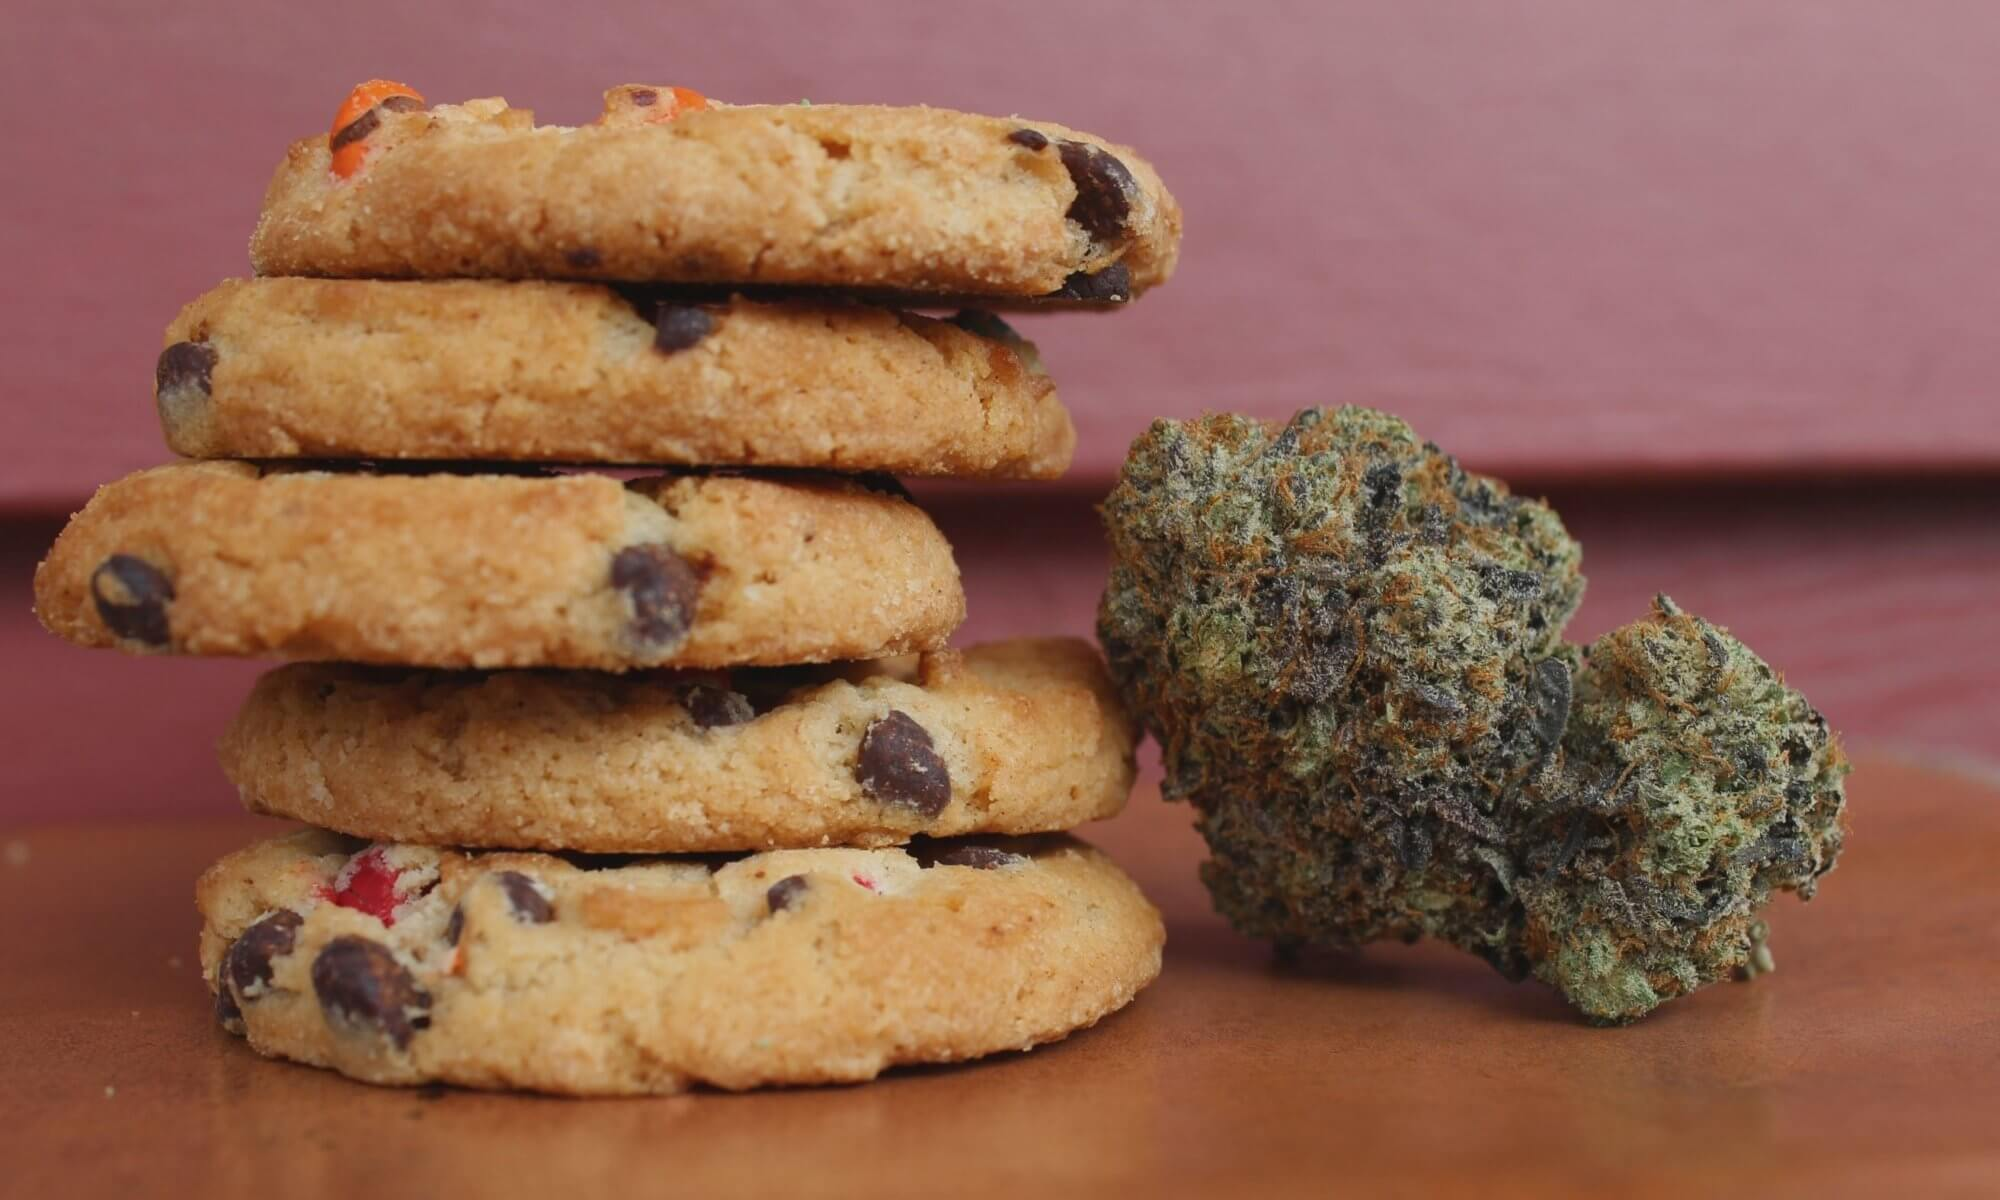 Where to Find Edibles in British Columbia